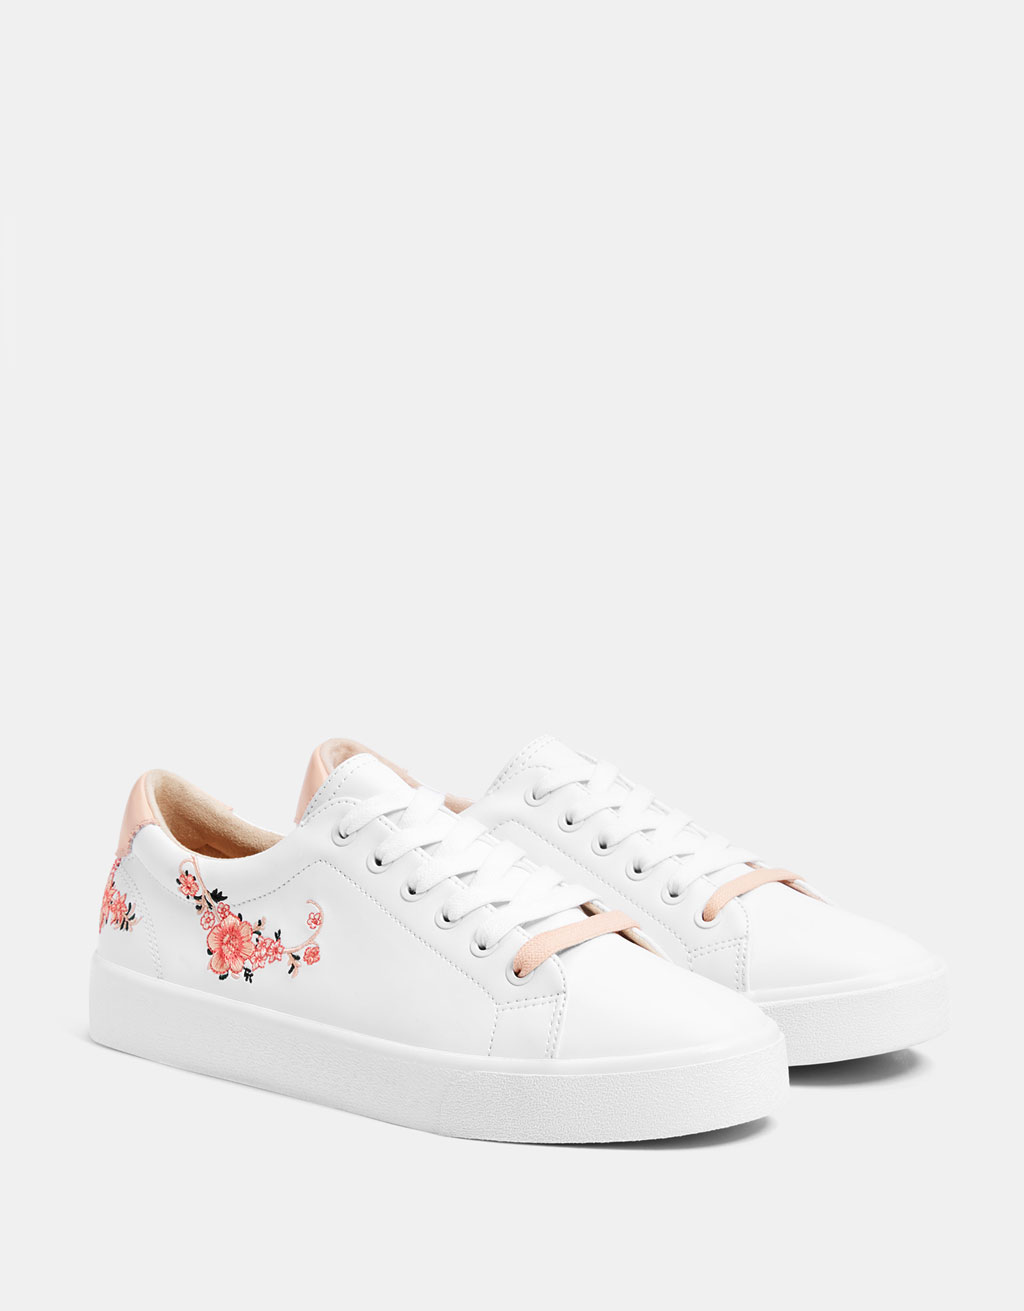 Embroidered white trainers